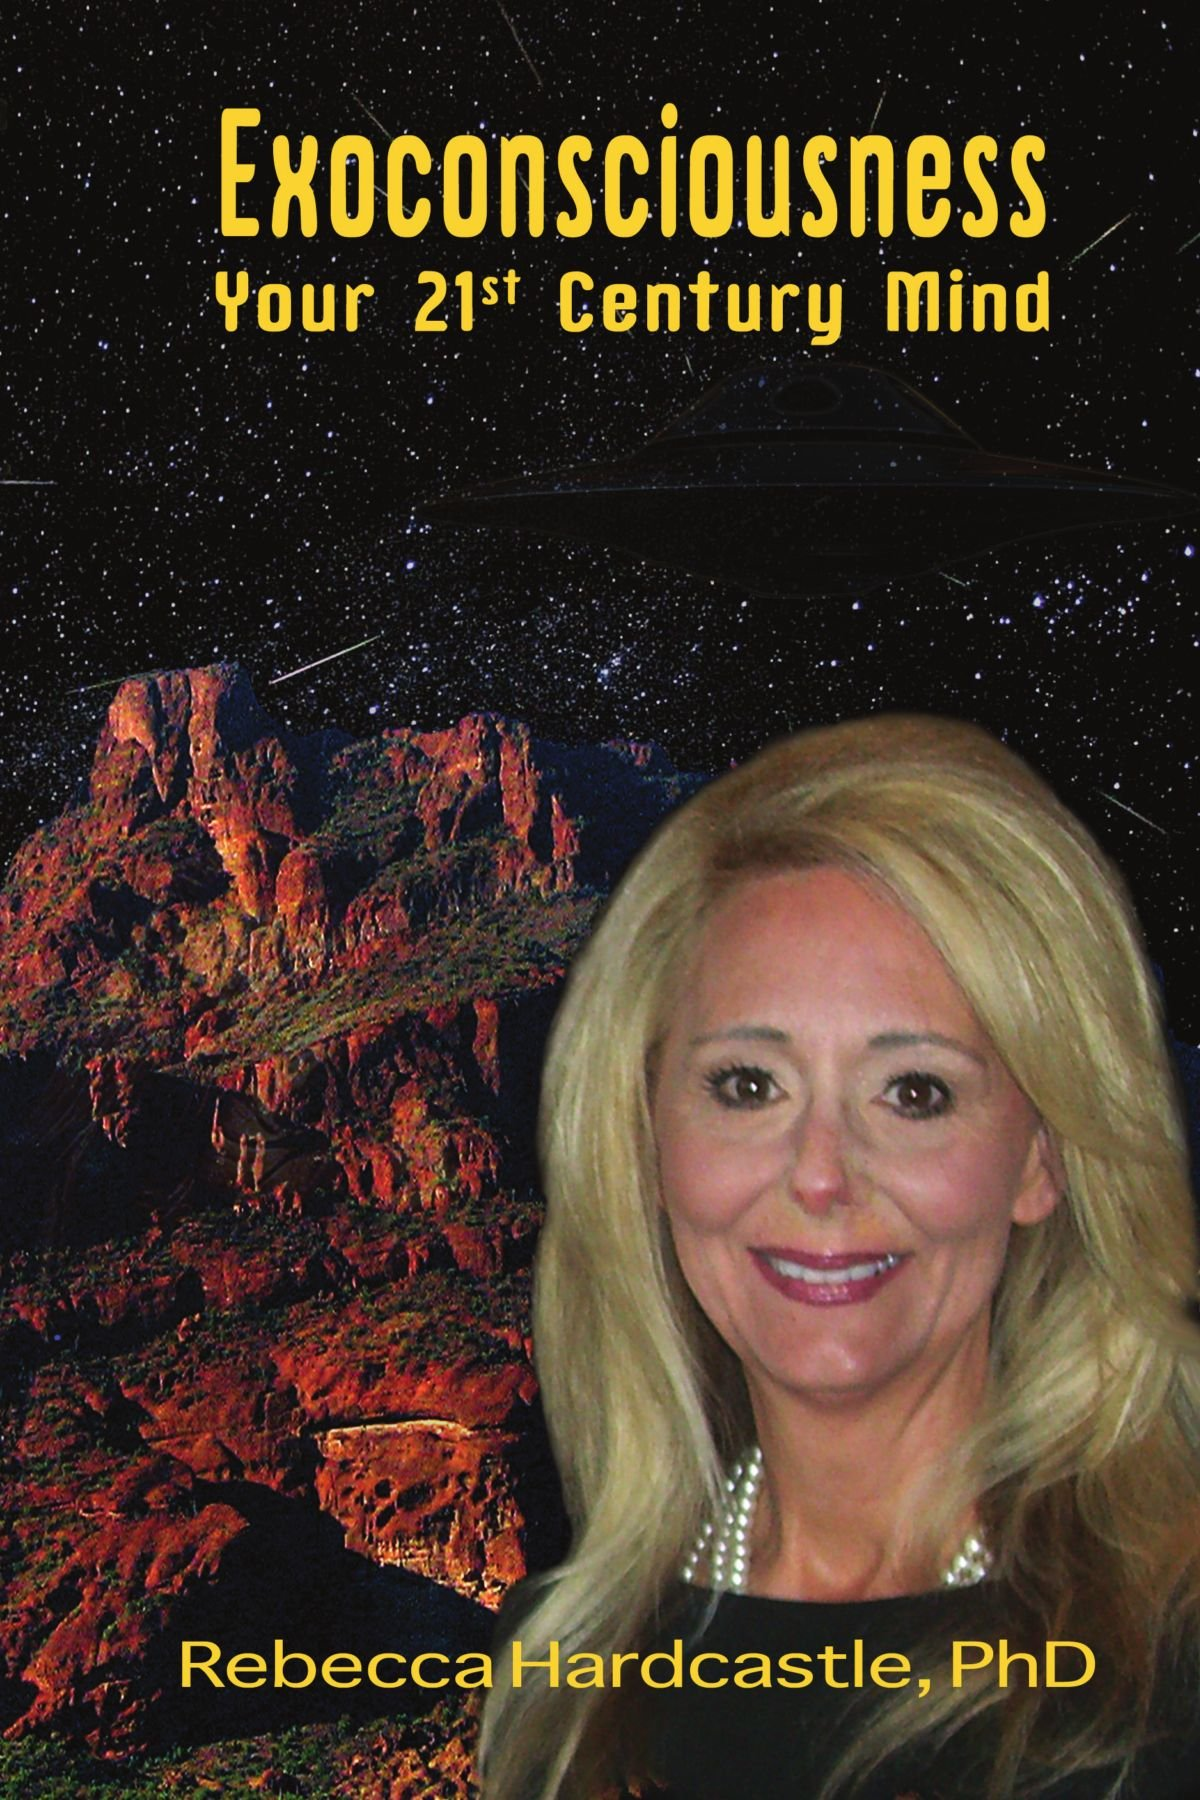 Exoconsciousness: Your 21st Century Mind by Rebecca Hardcastle Wright, PhD